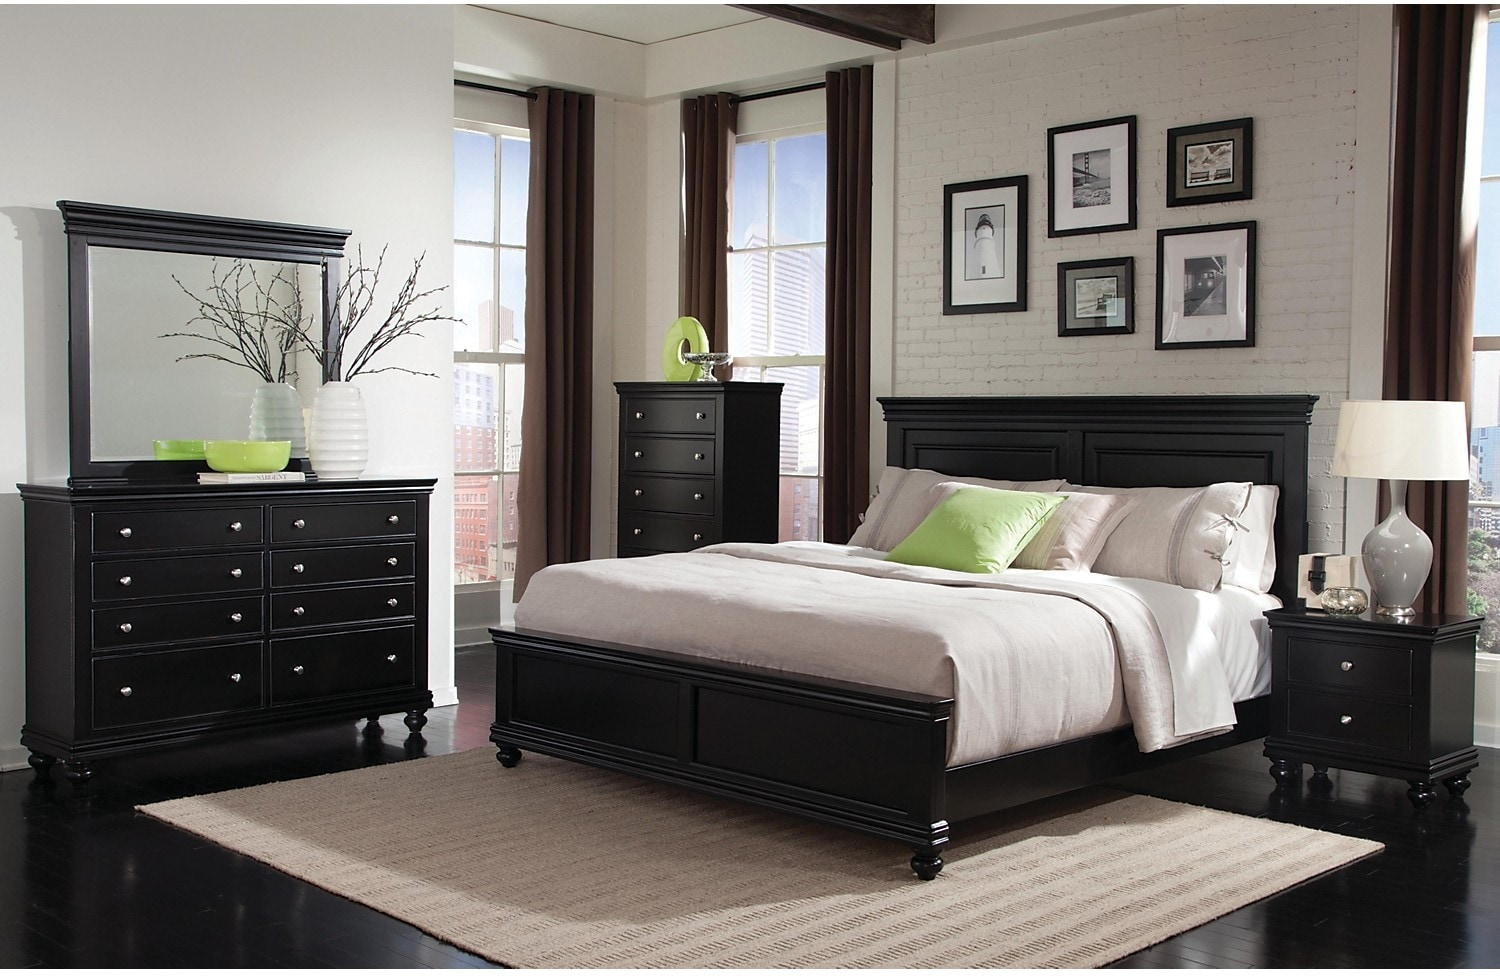 Bridgeport 5 piece queen bedroom set black the brick - Black queen bedroom furniture set ...